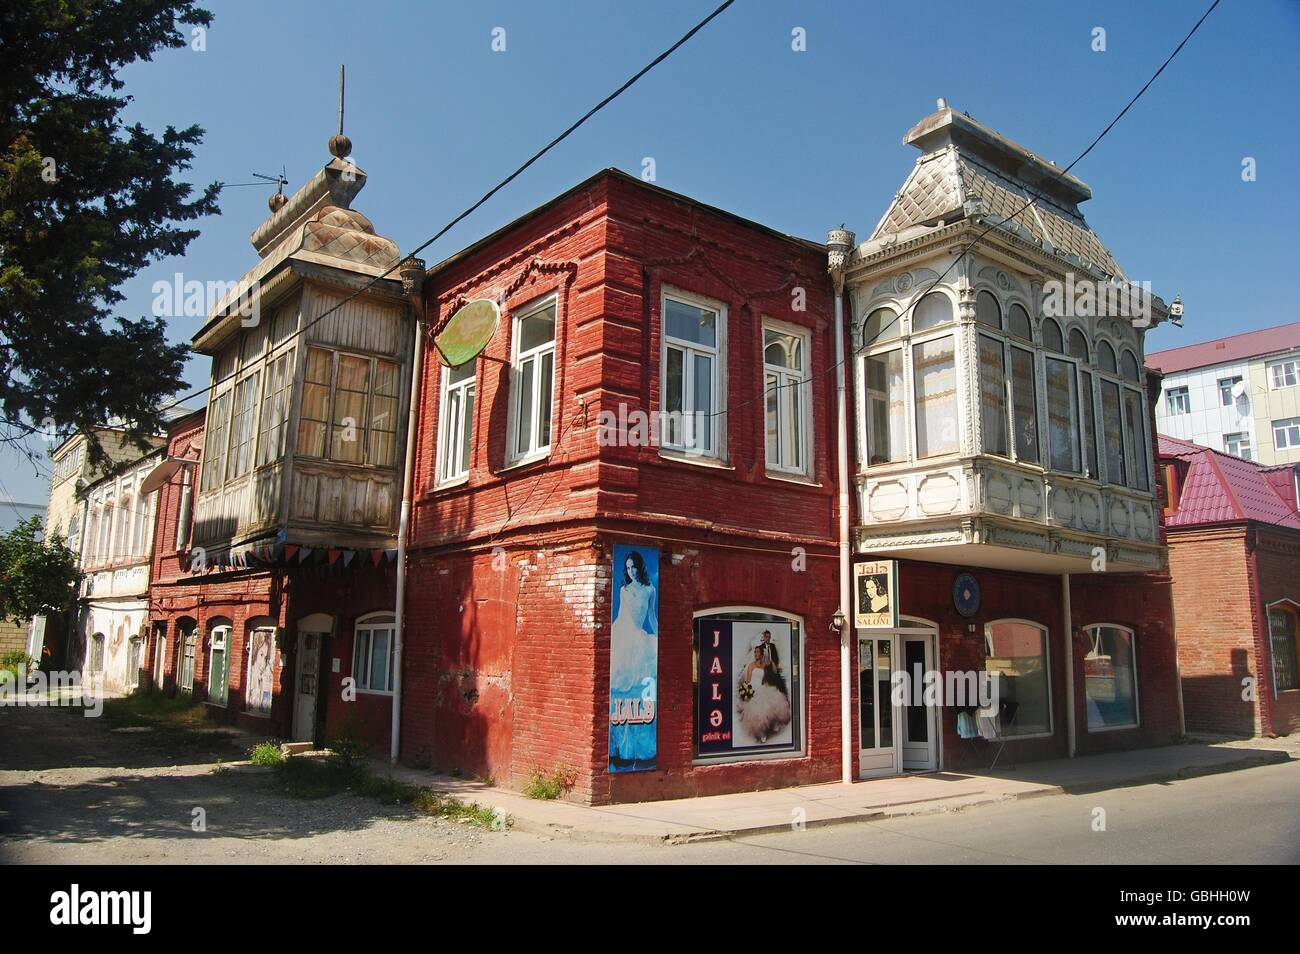 Typical 19th-century house in central Quba - Stock Image